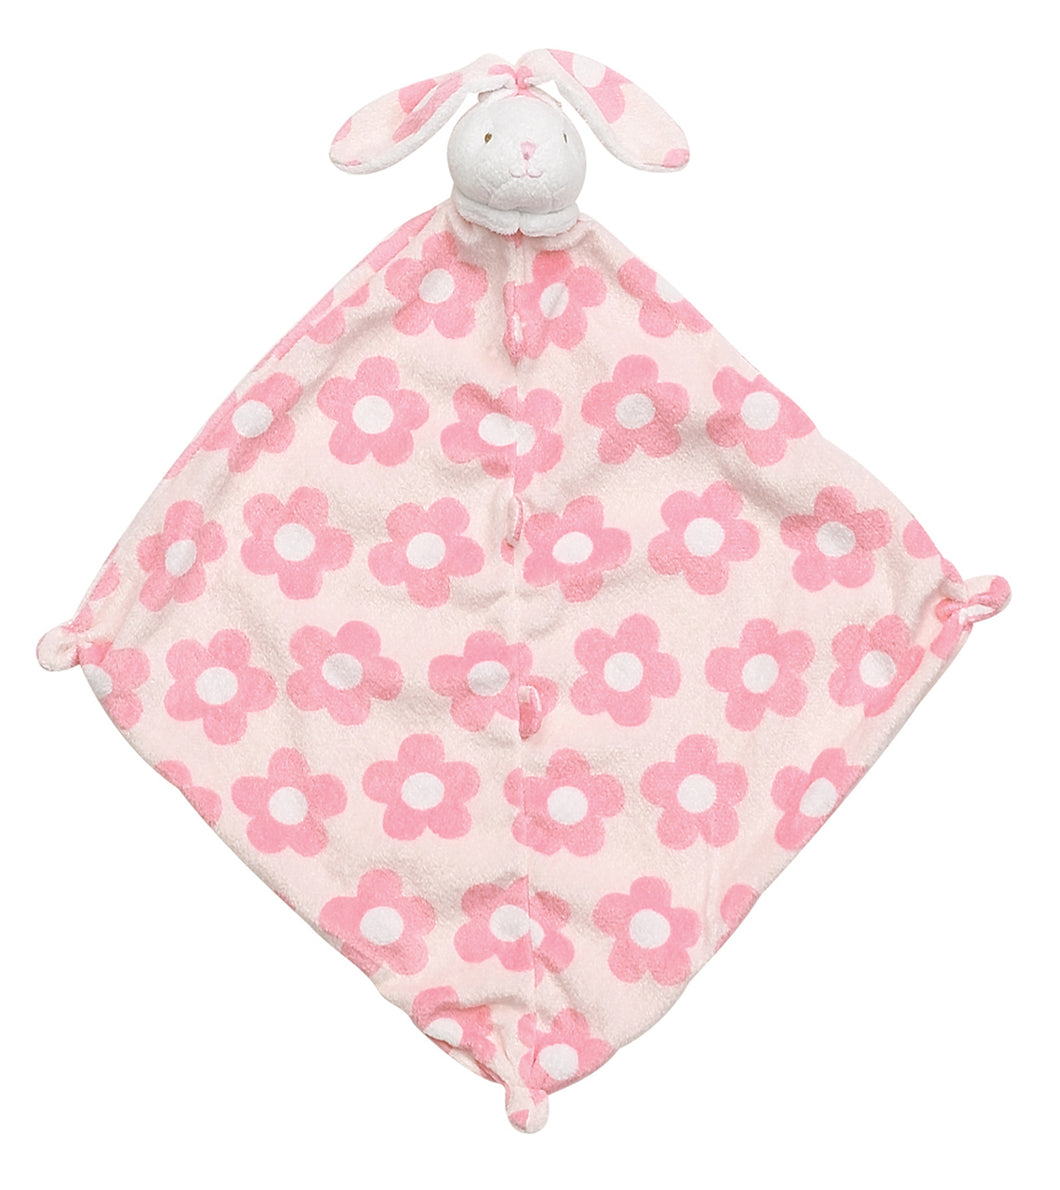 Angel Dear Security Blanket/Lovie - Flower Bunny